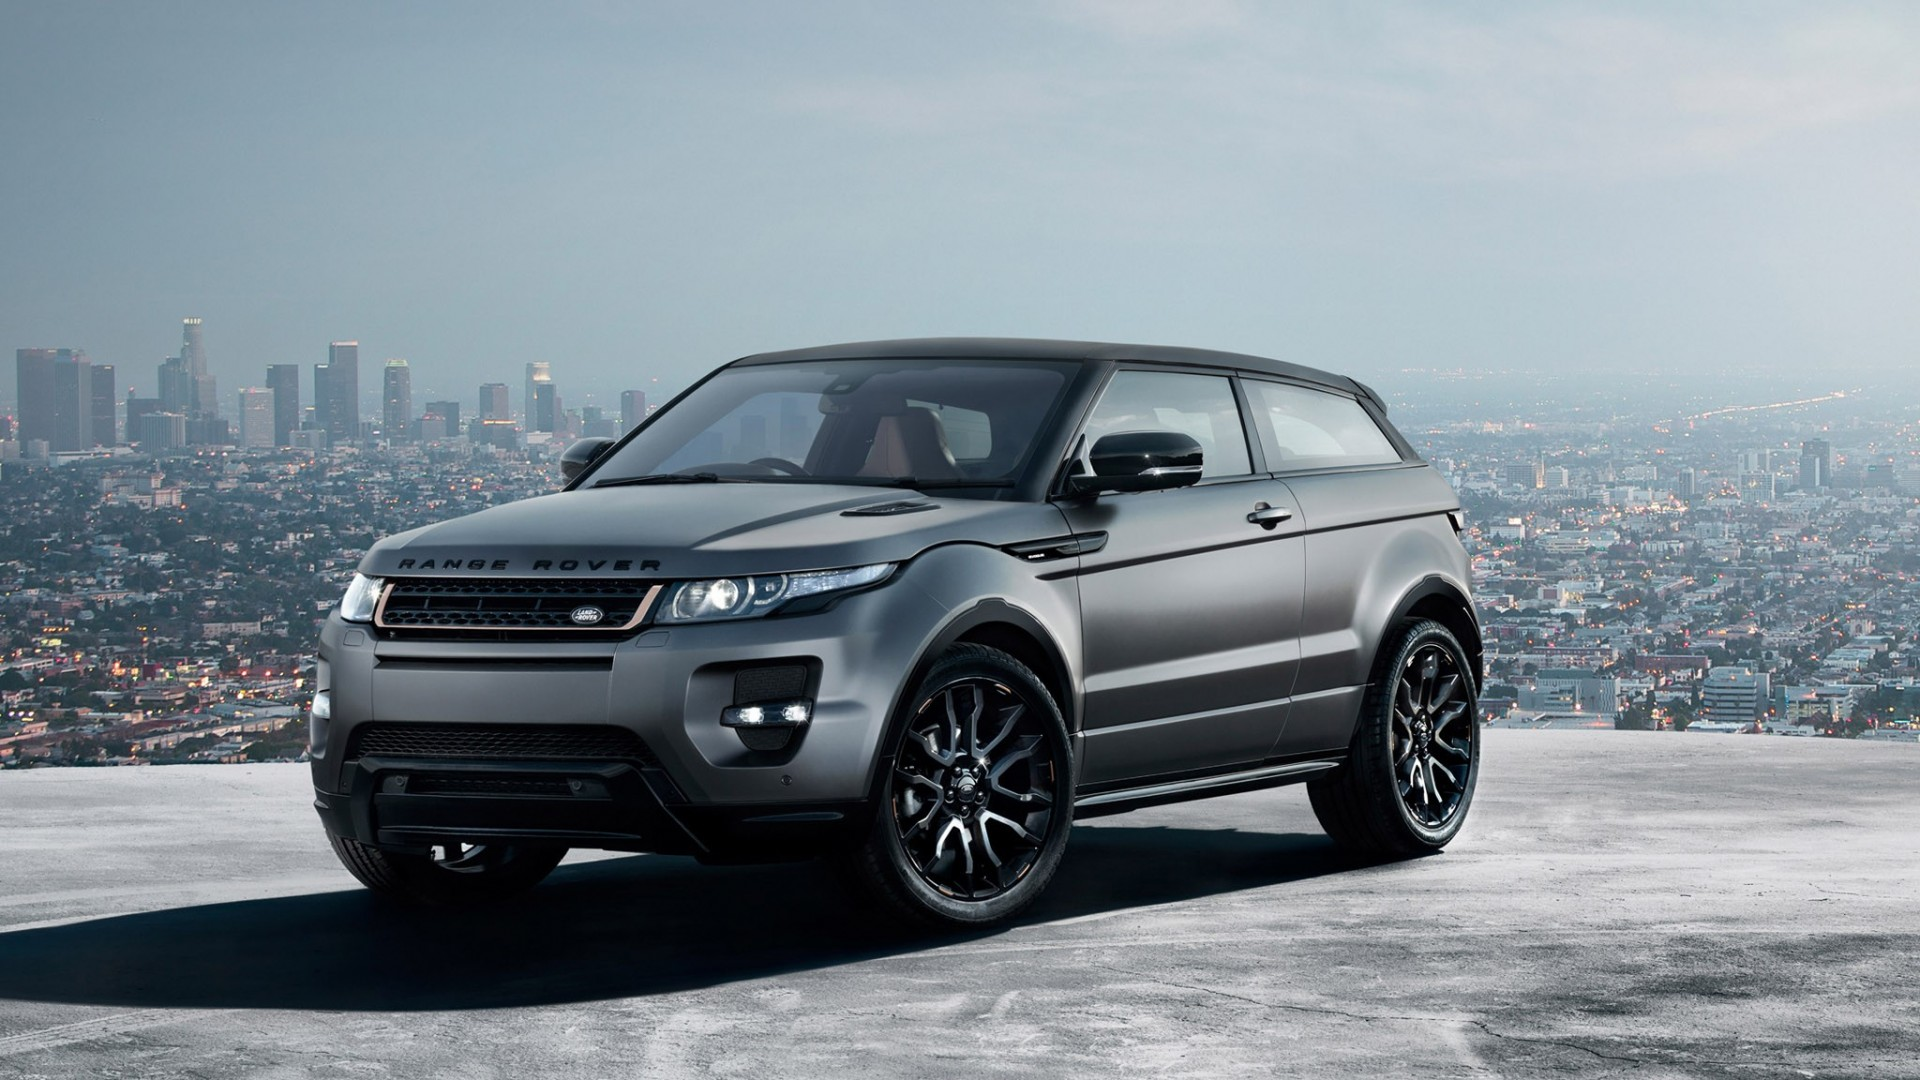 2012 Land Rover Range Rover HD Wallpaper